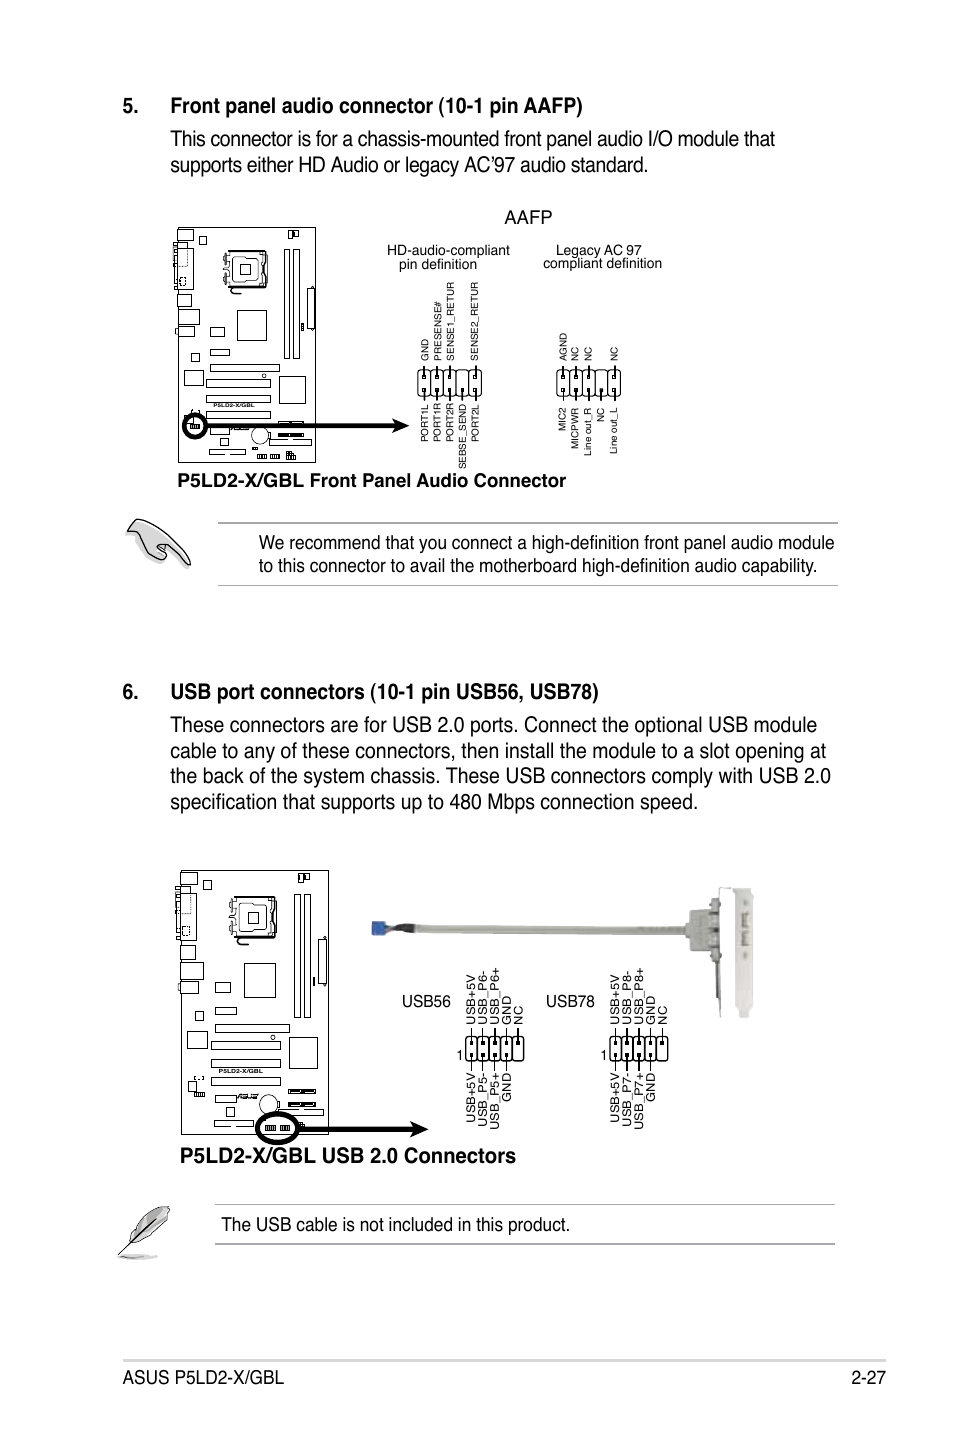 P5ld2-x/gbl usb 2.0 connectors, The usb cable is not included in